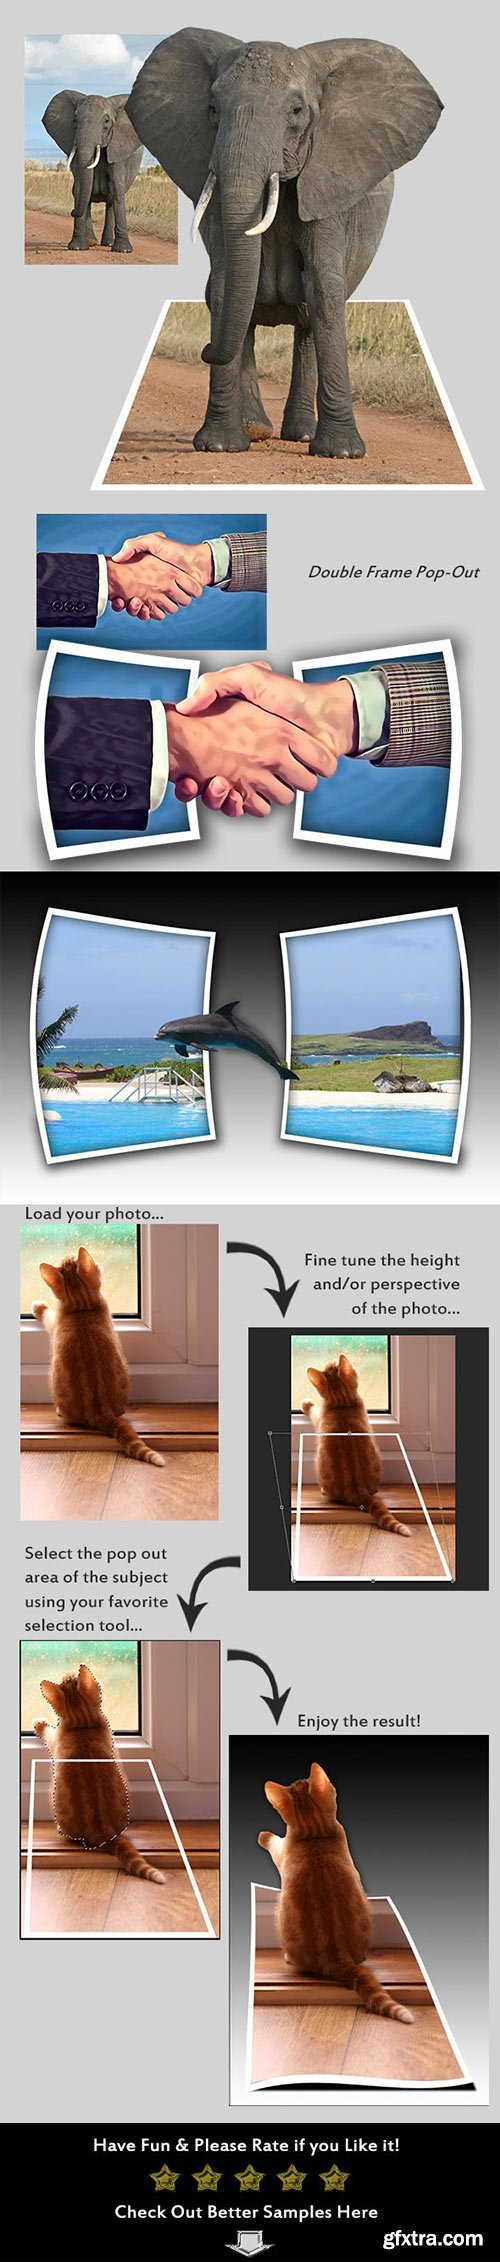 GraphicRiver - Photo Pop-Out Creator 10400143